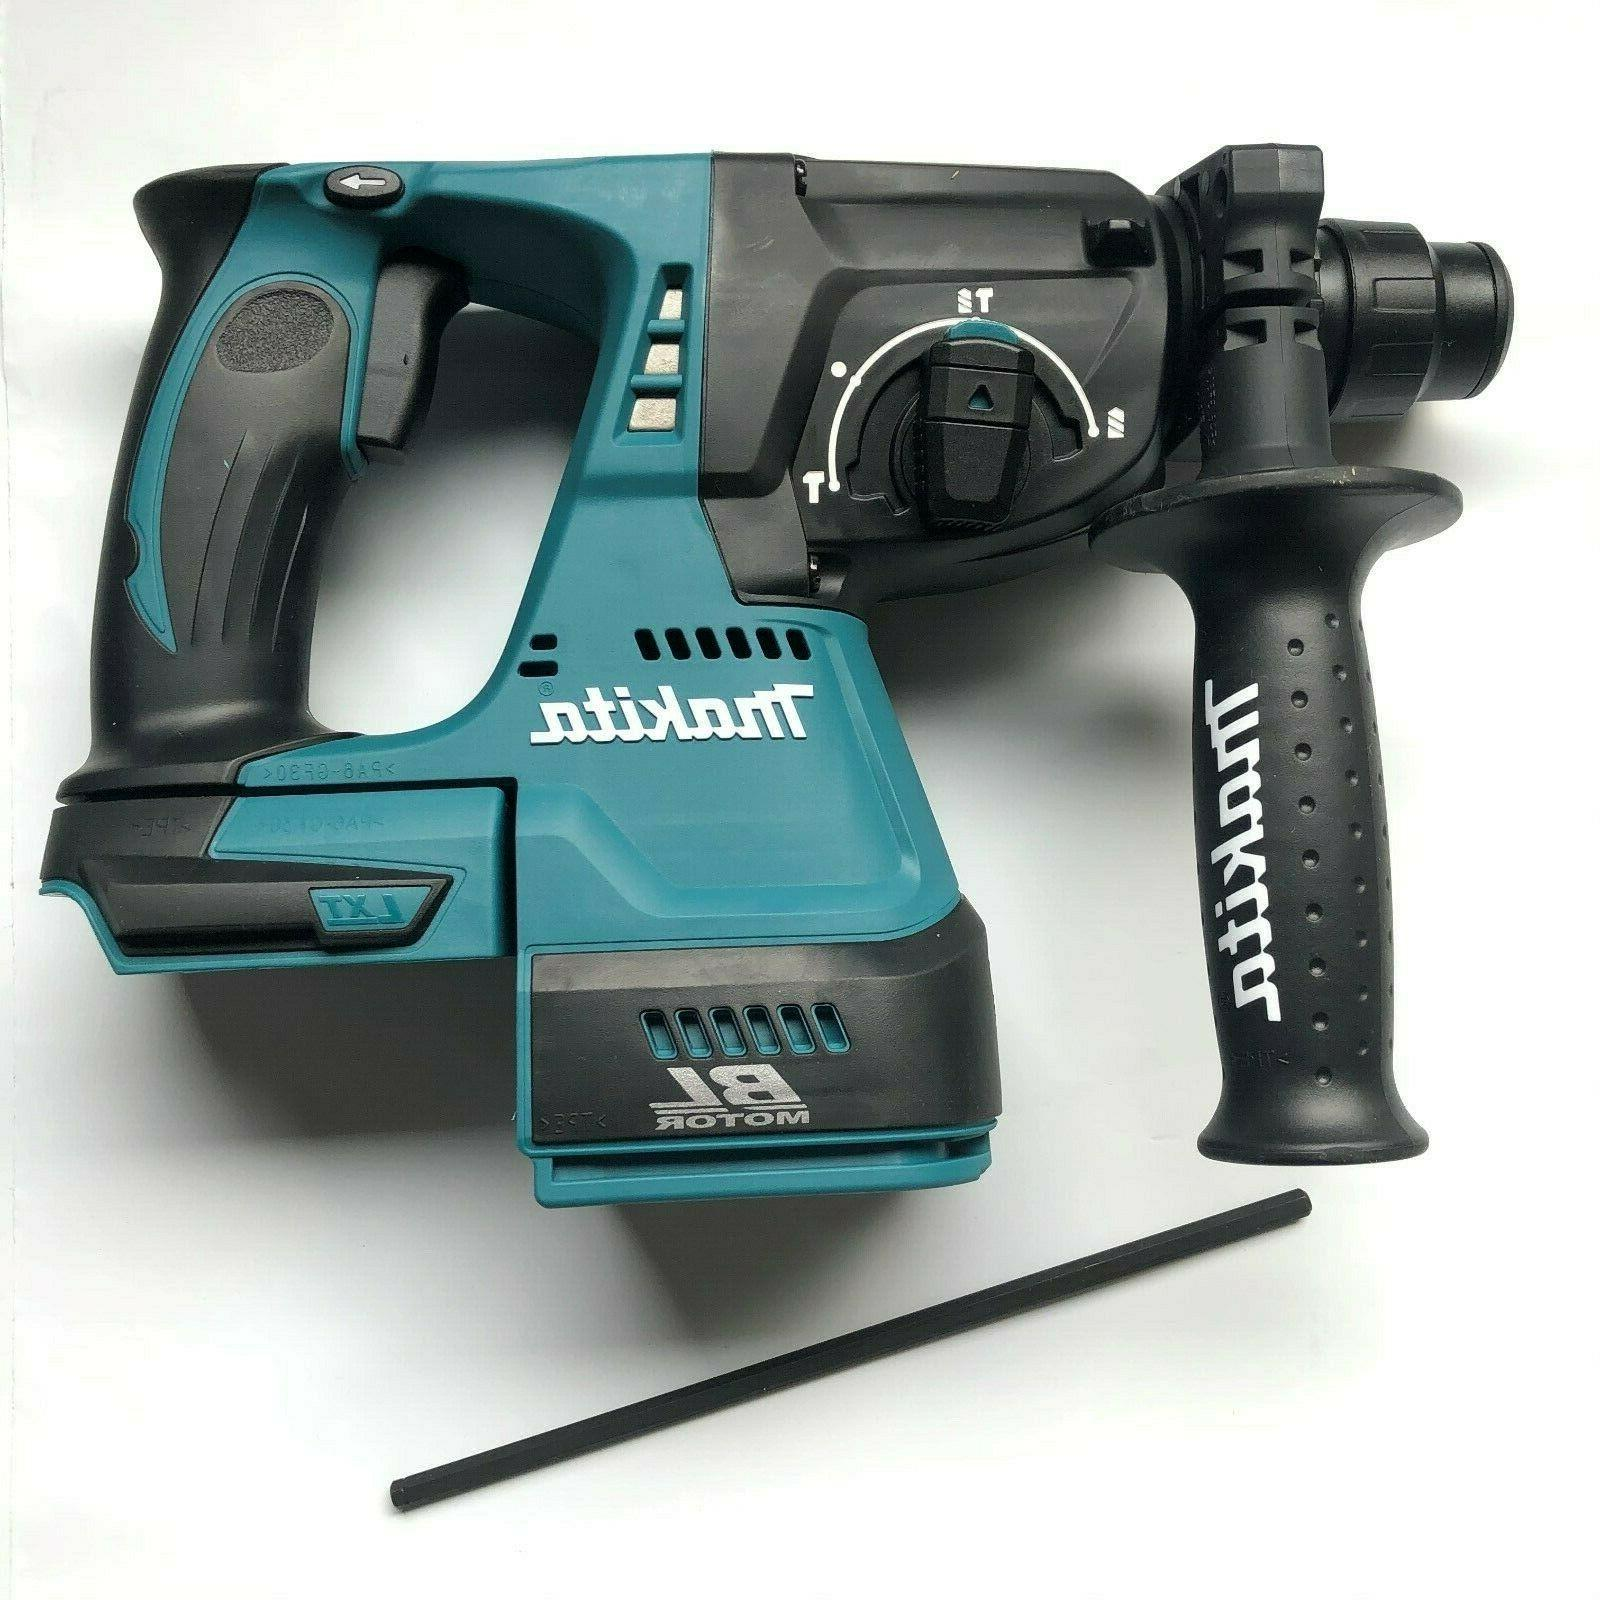 xrh01z lxt lithium ion brushless